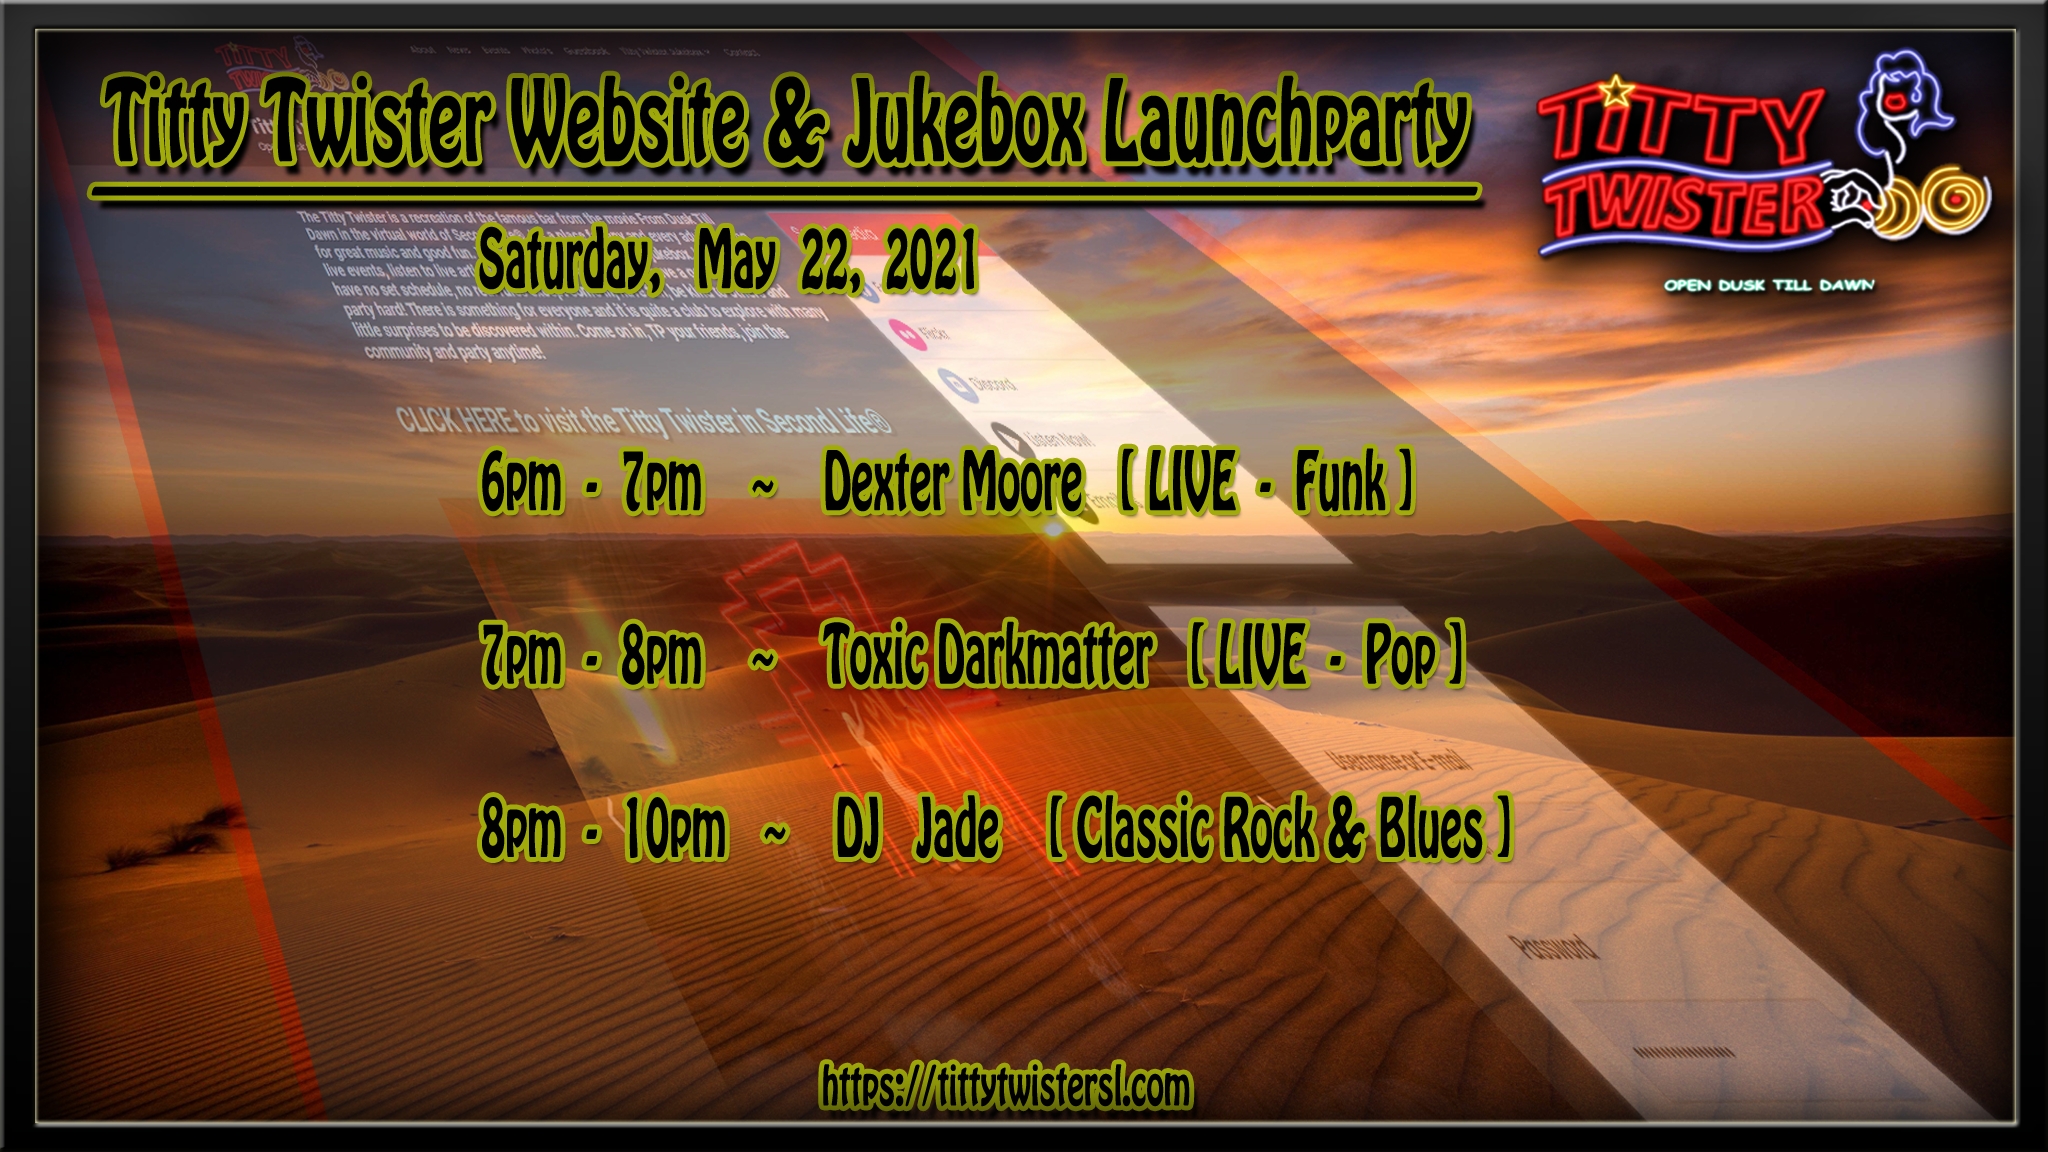 Titty Twister website and jukebox launchparty